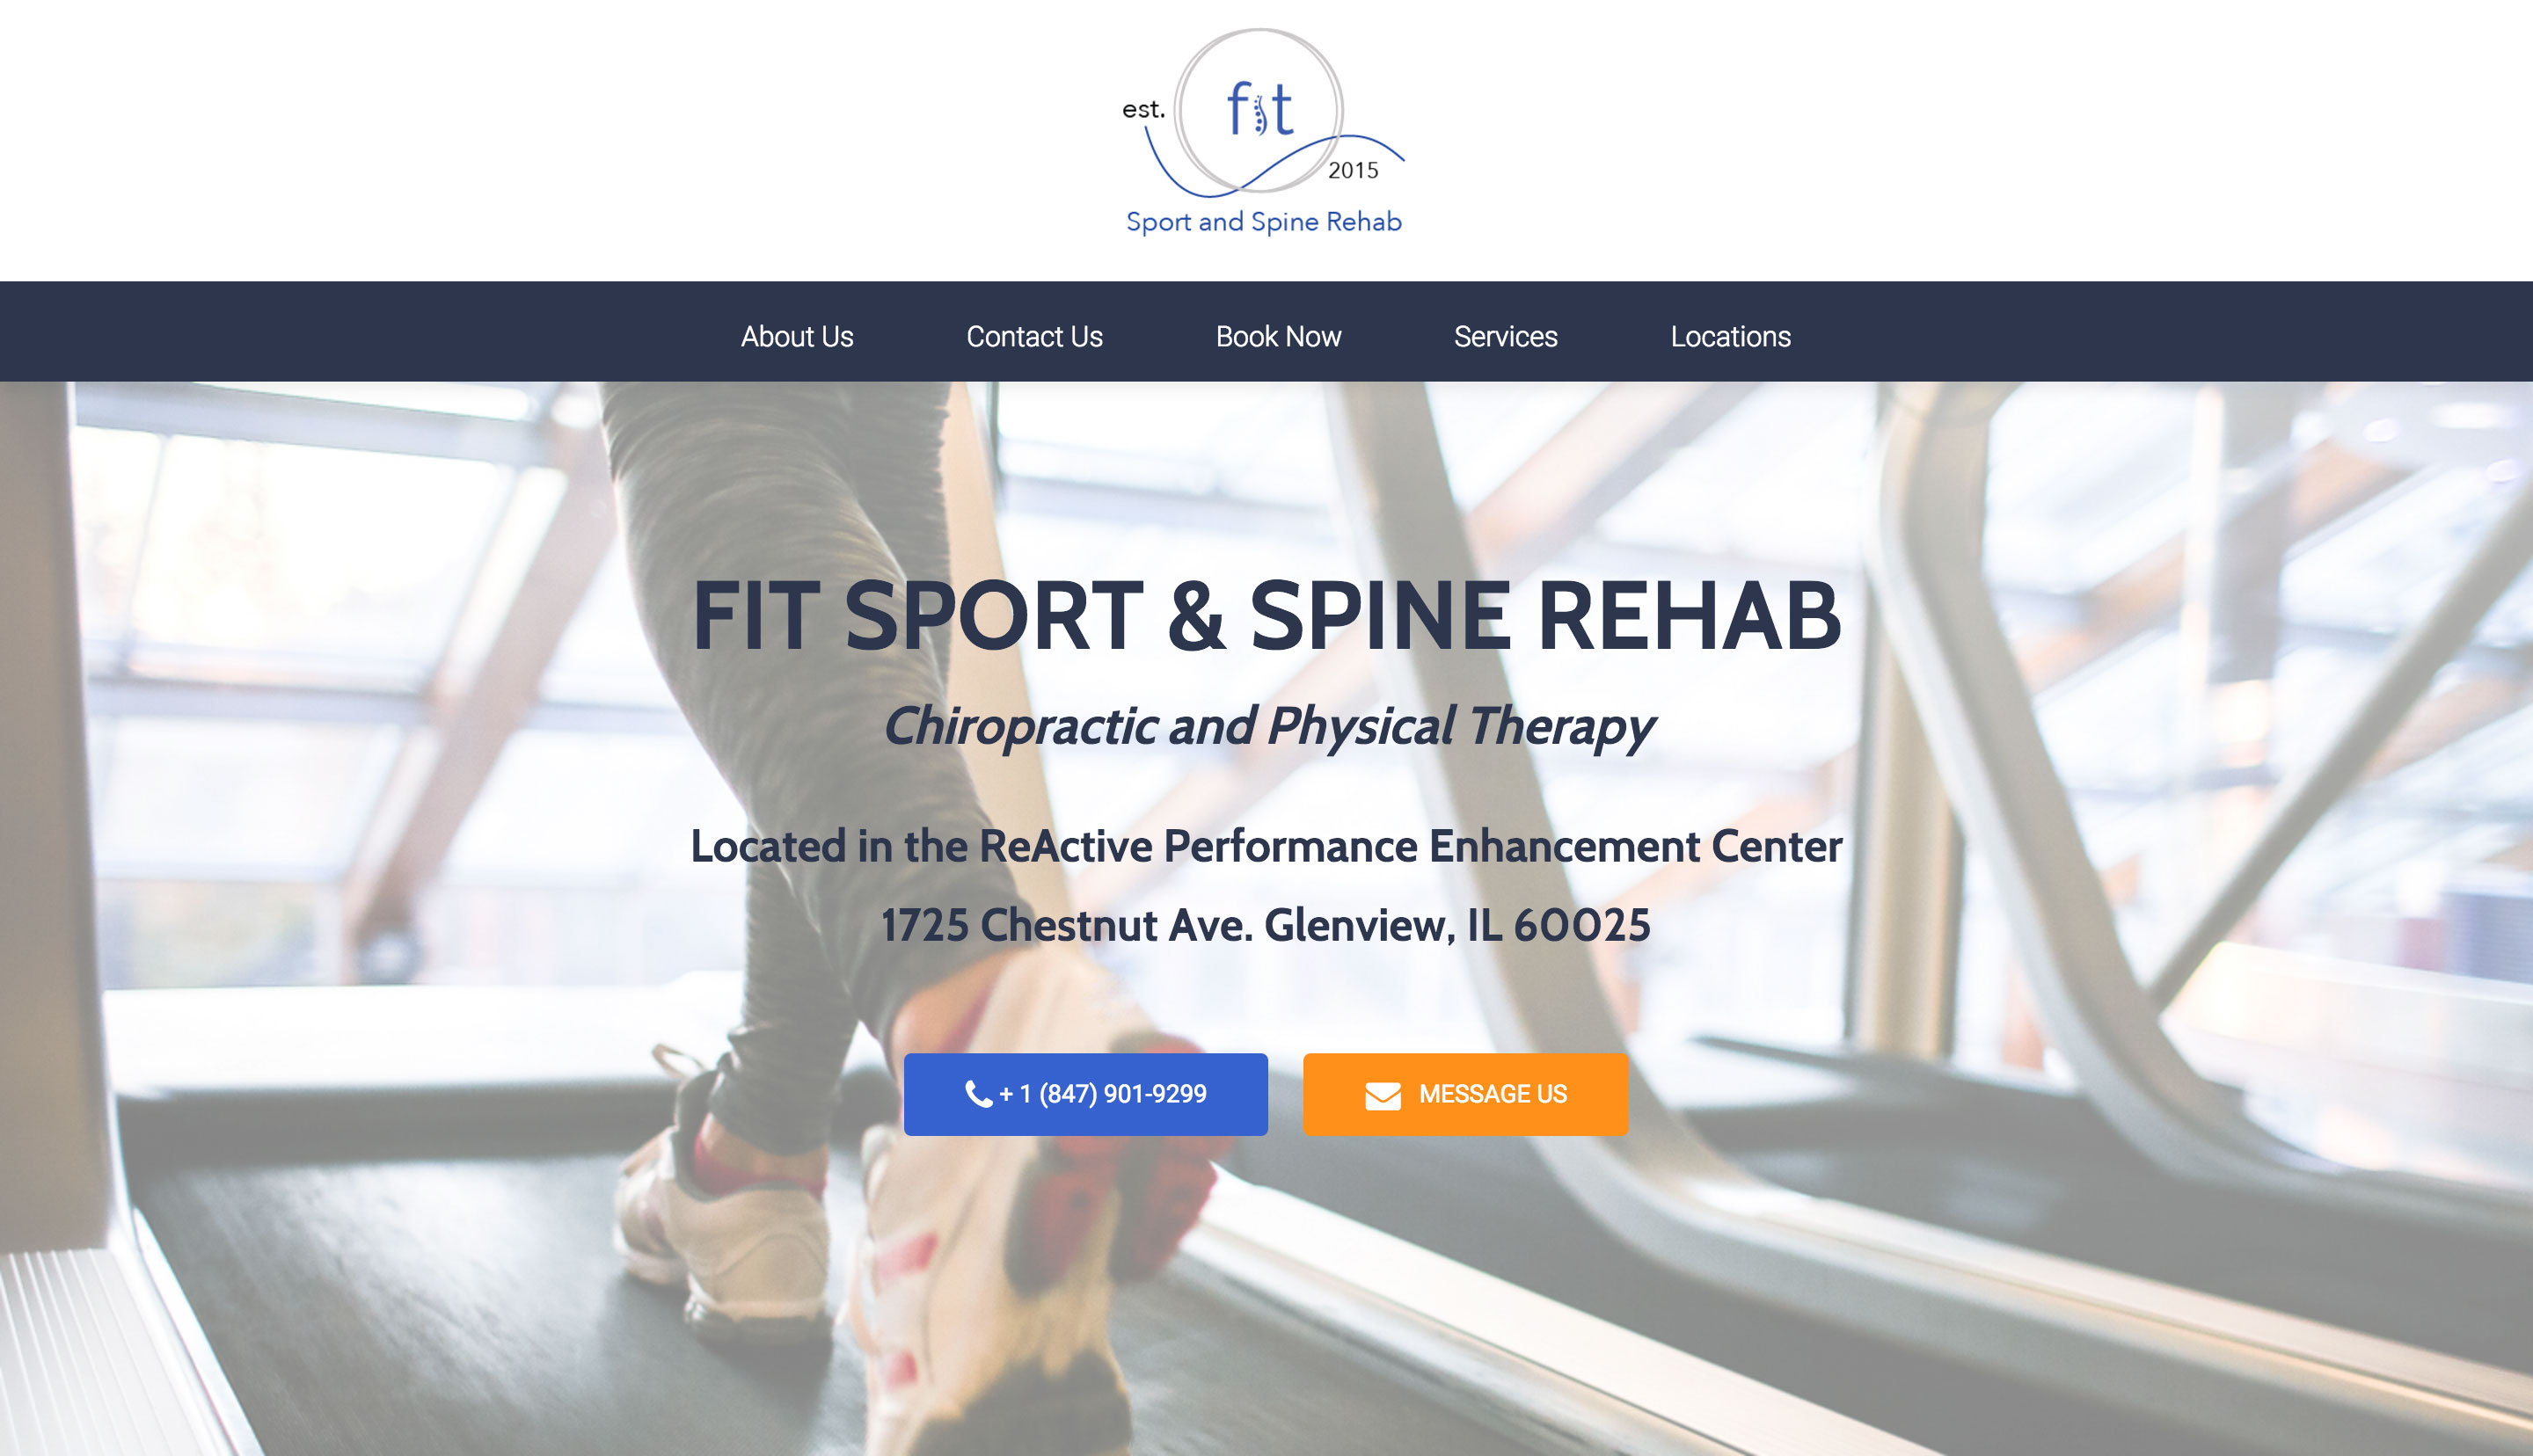 FIT Sport and Spine Rehab design pic